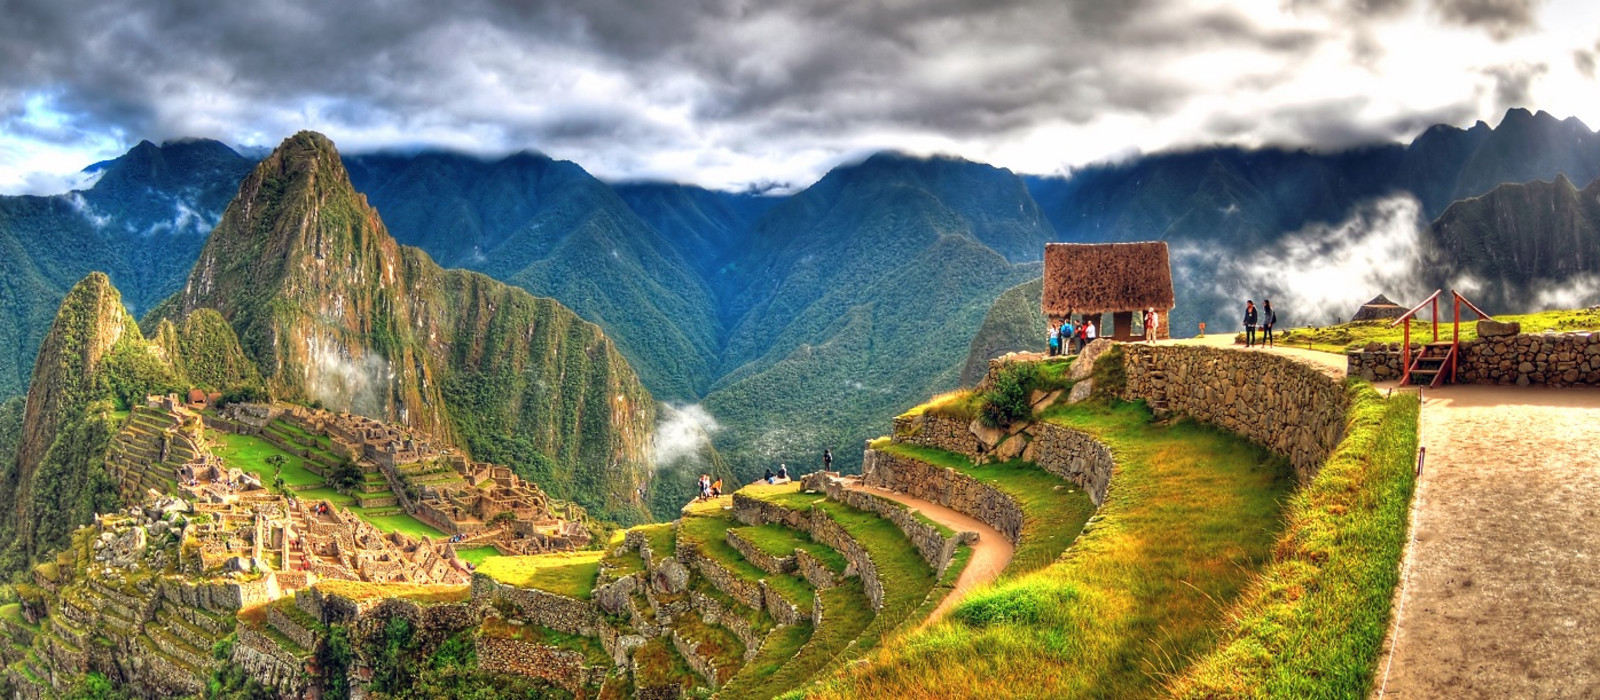 Machu Picchu, the lost city of the Incas, Peru, South America